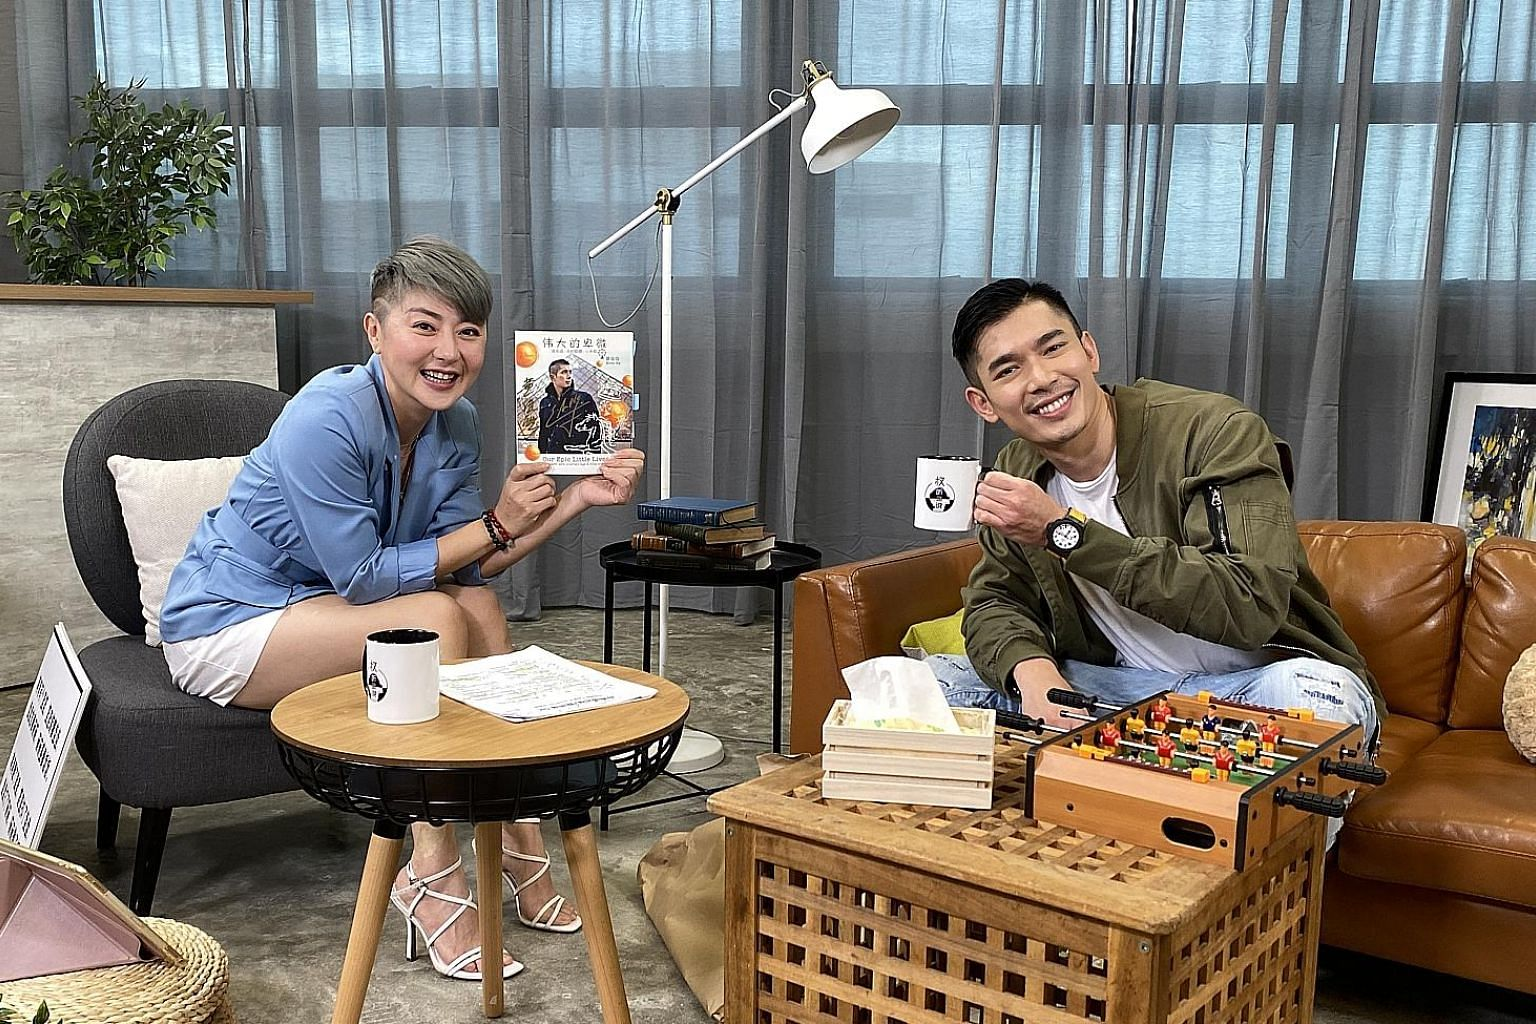 (Above) Host Quan Yifeng and actor Elvin Ng in weekly talk show Hear U Out. (Left) Cho Seung-woo and Bae Doona as a prosecutor and detective in police drama Stranger 2.